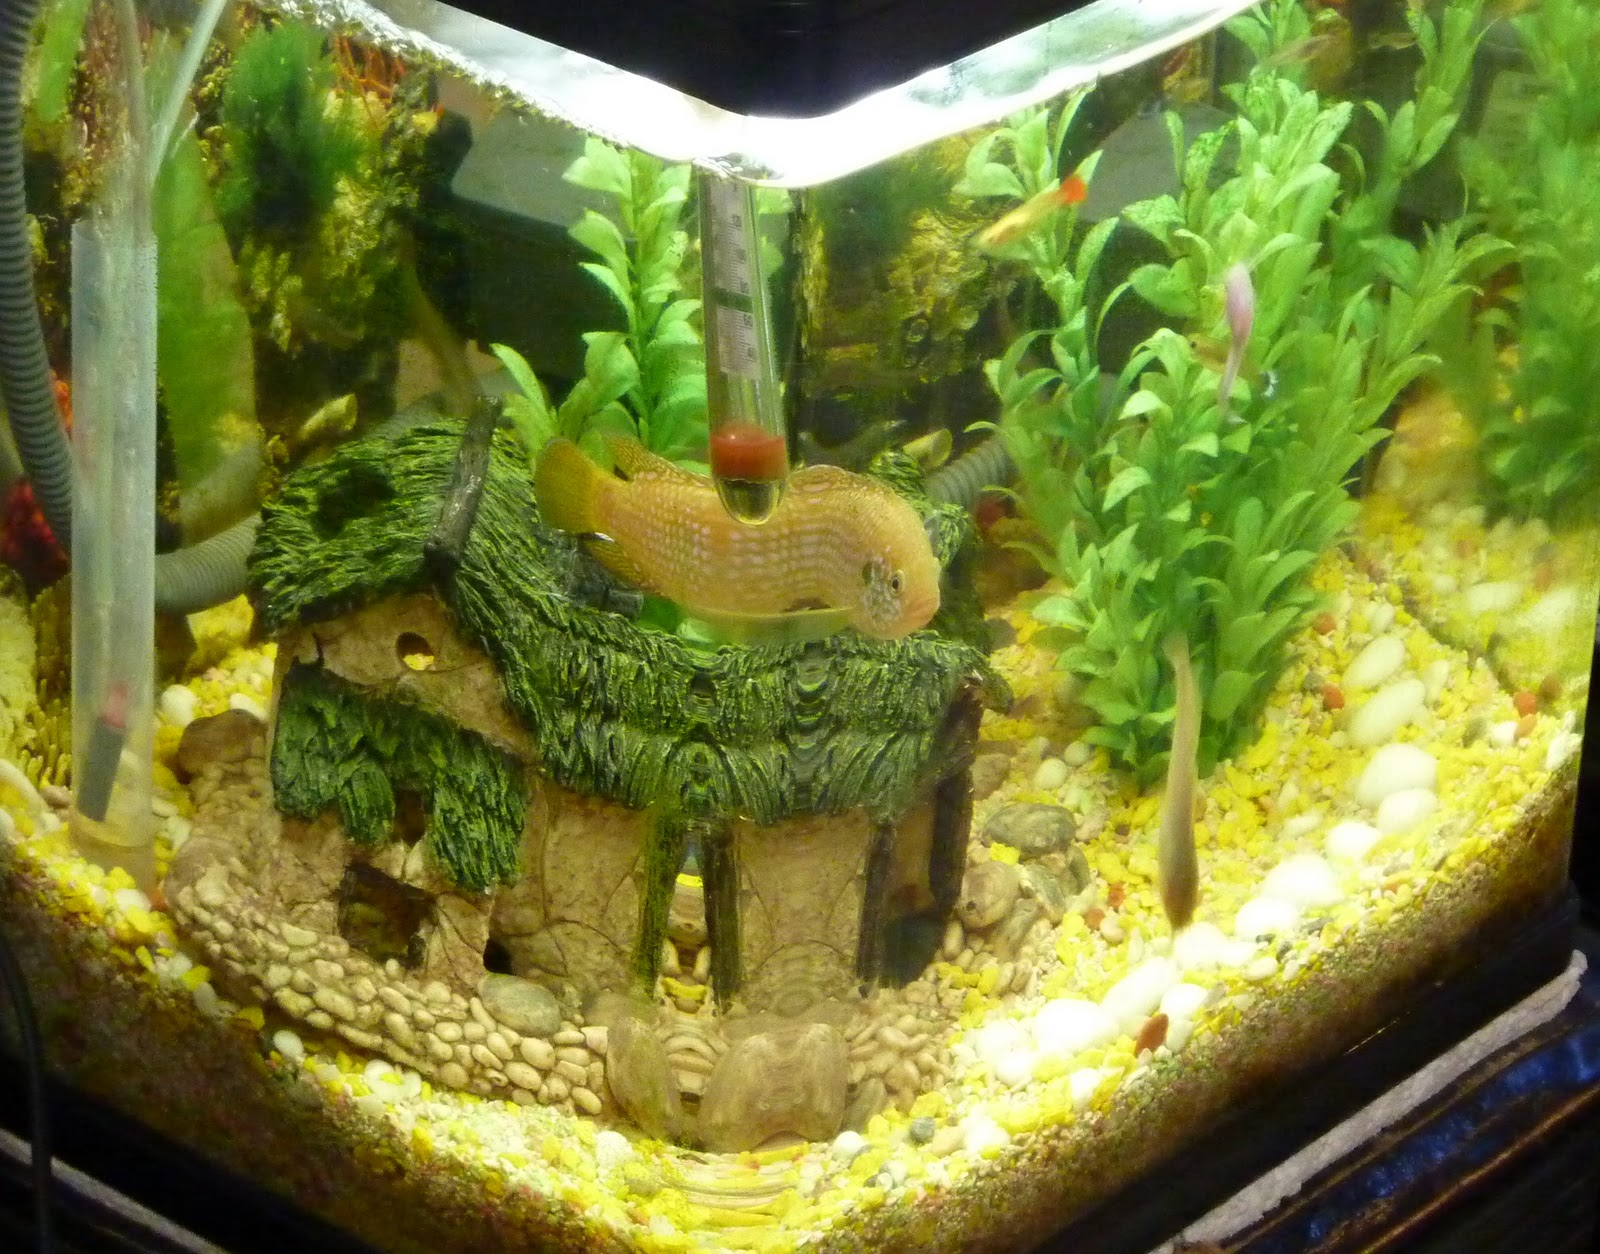 Fish aquarium in johor bahru - This Is Another Of My Tropical Tanks Taken From Side Corner Angle Lots Of Small Fish Inhere But Not Showing On Picture Guppy S Etc Catfish Small Chic Lid